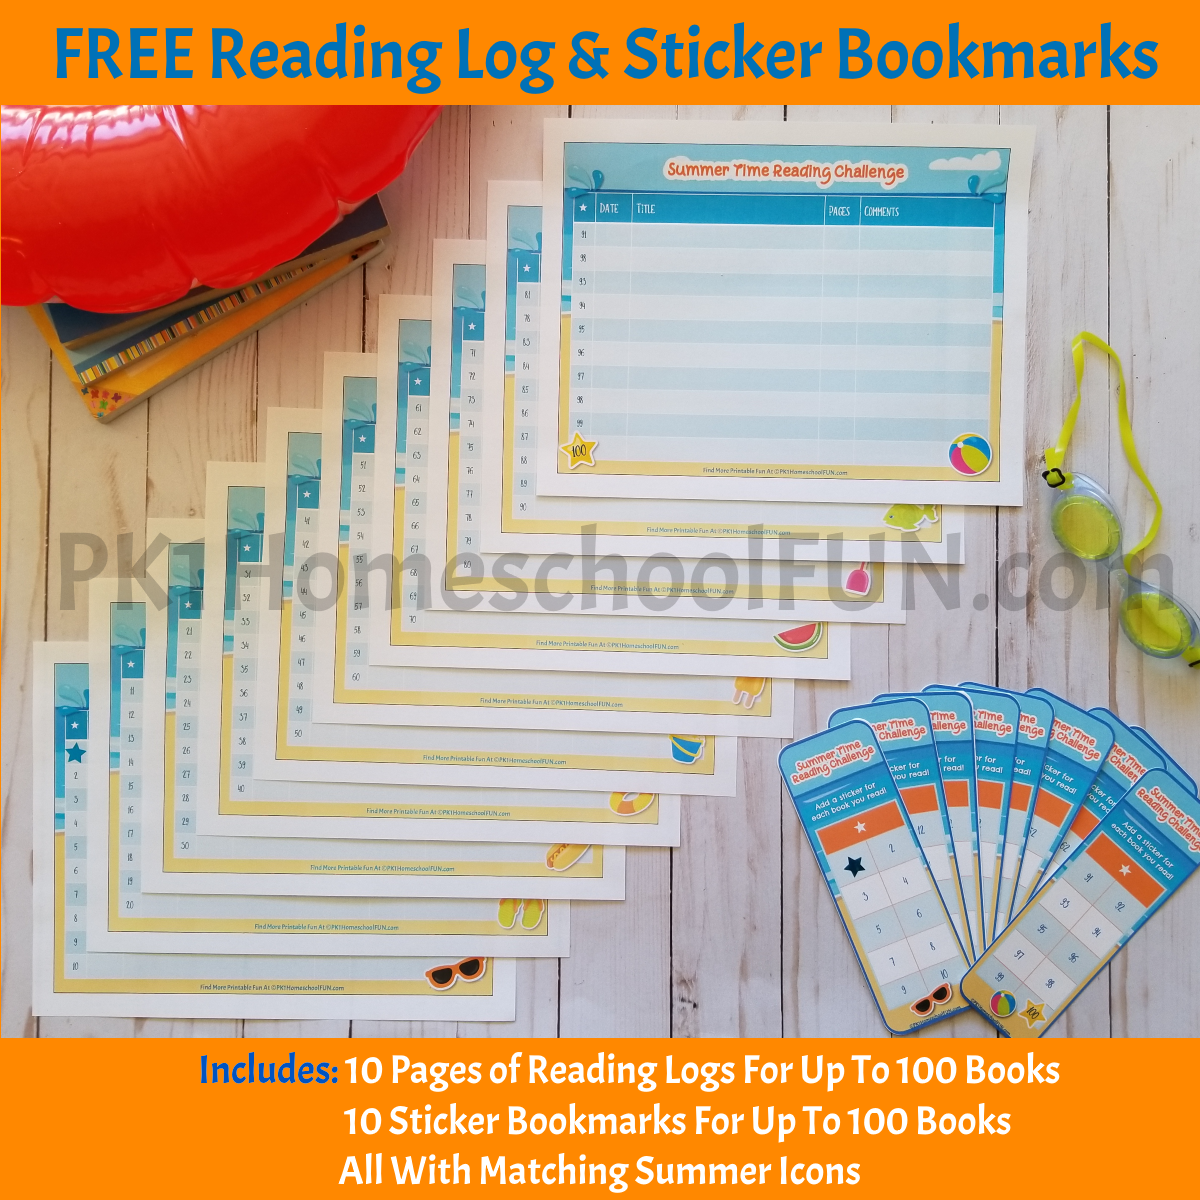 Inspire some fun summer reading with these adorable summer reading challenge printables. Great for a 100 Book Challenge or less, these free printables will add some fun to your child's summer reading goals.